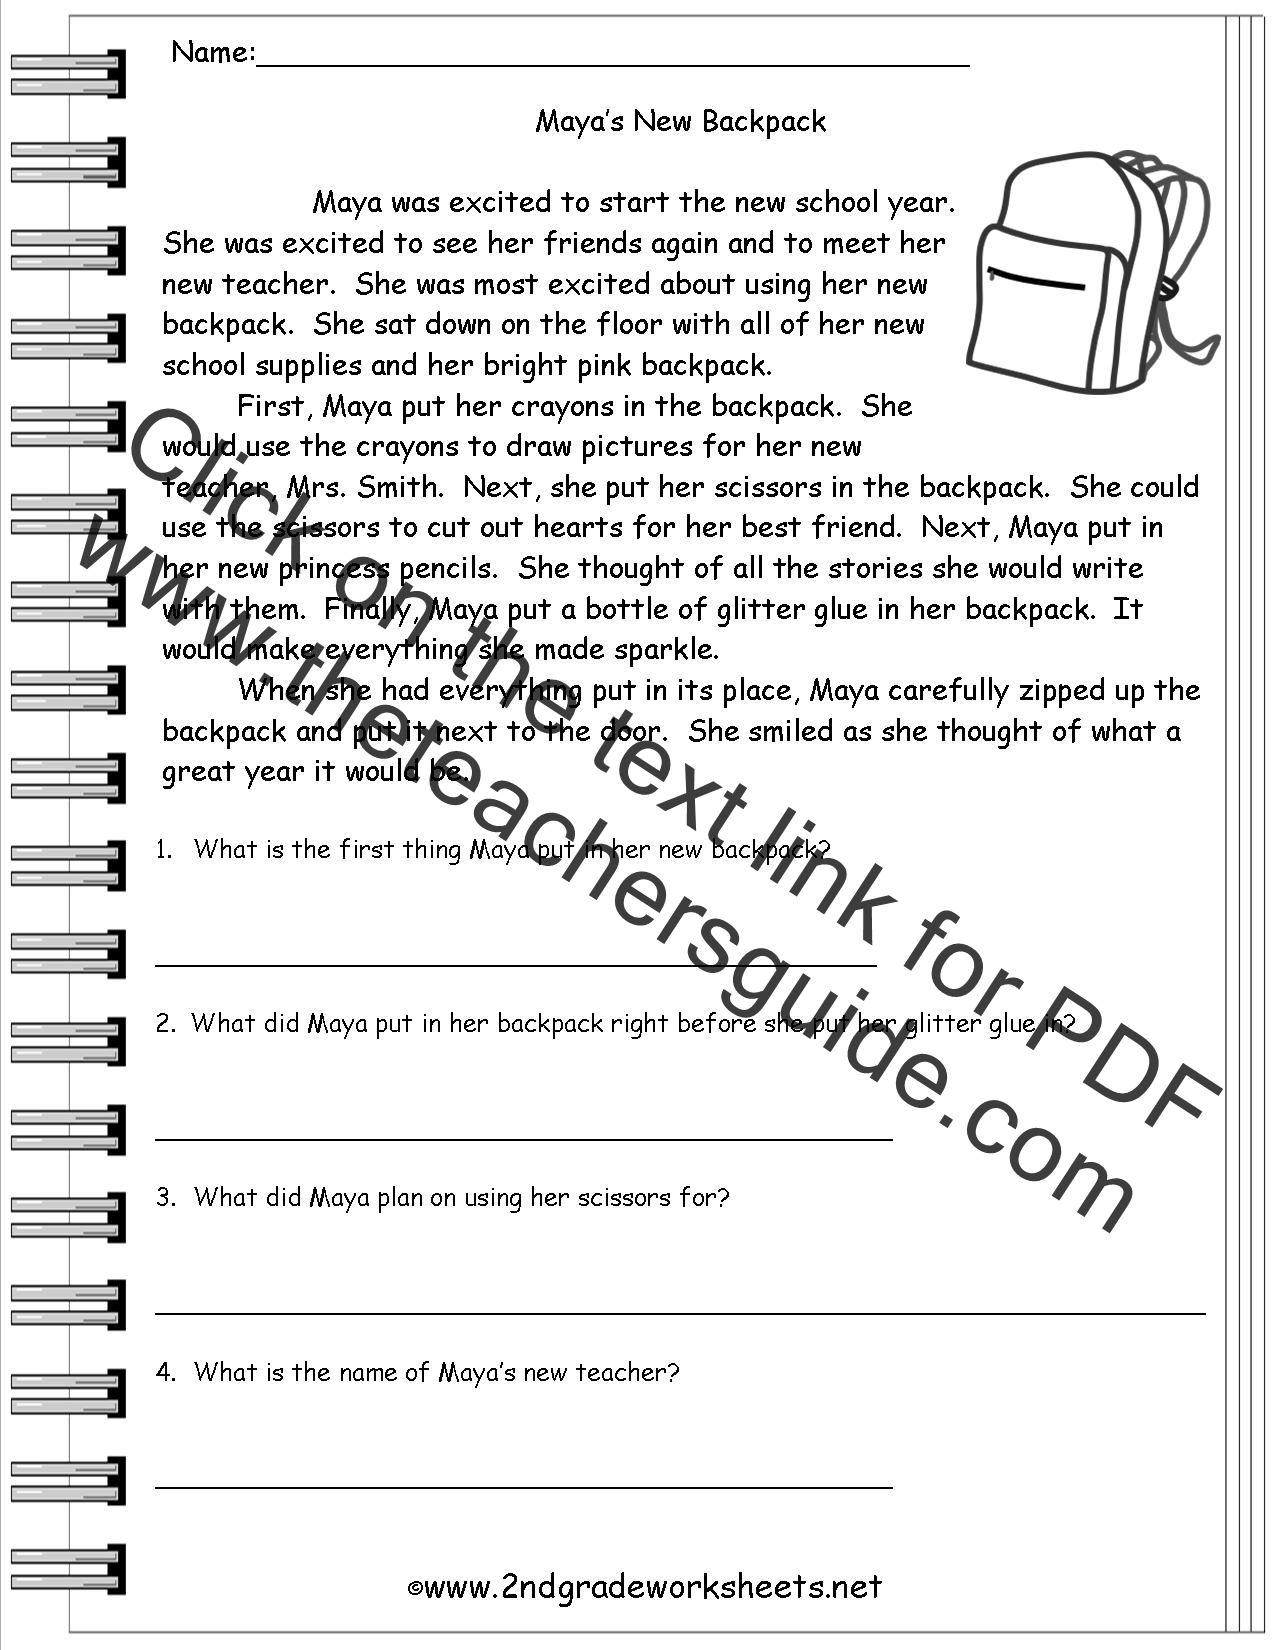 Worksheets Free Reading Comprehension Worksheets 2nd Grade reading worksheeets literature worksheets